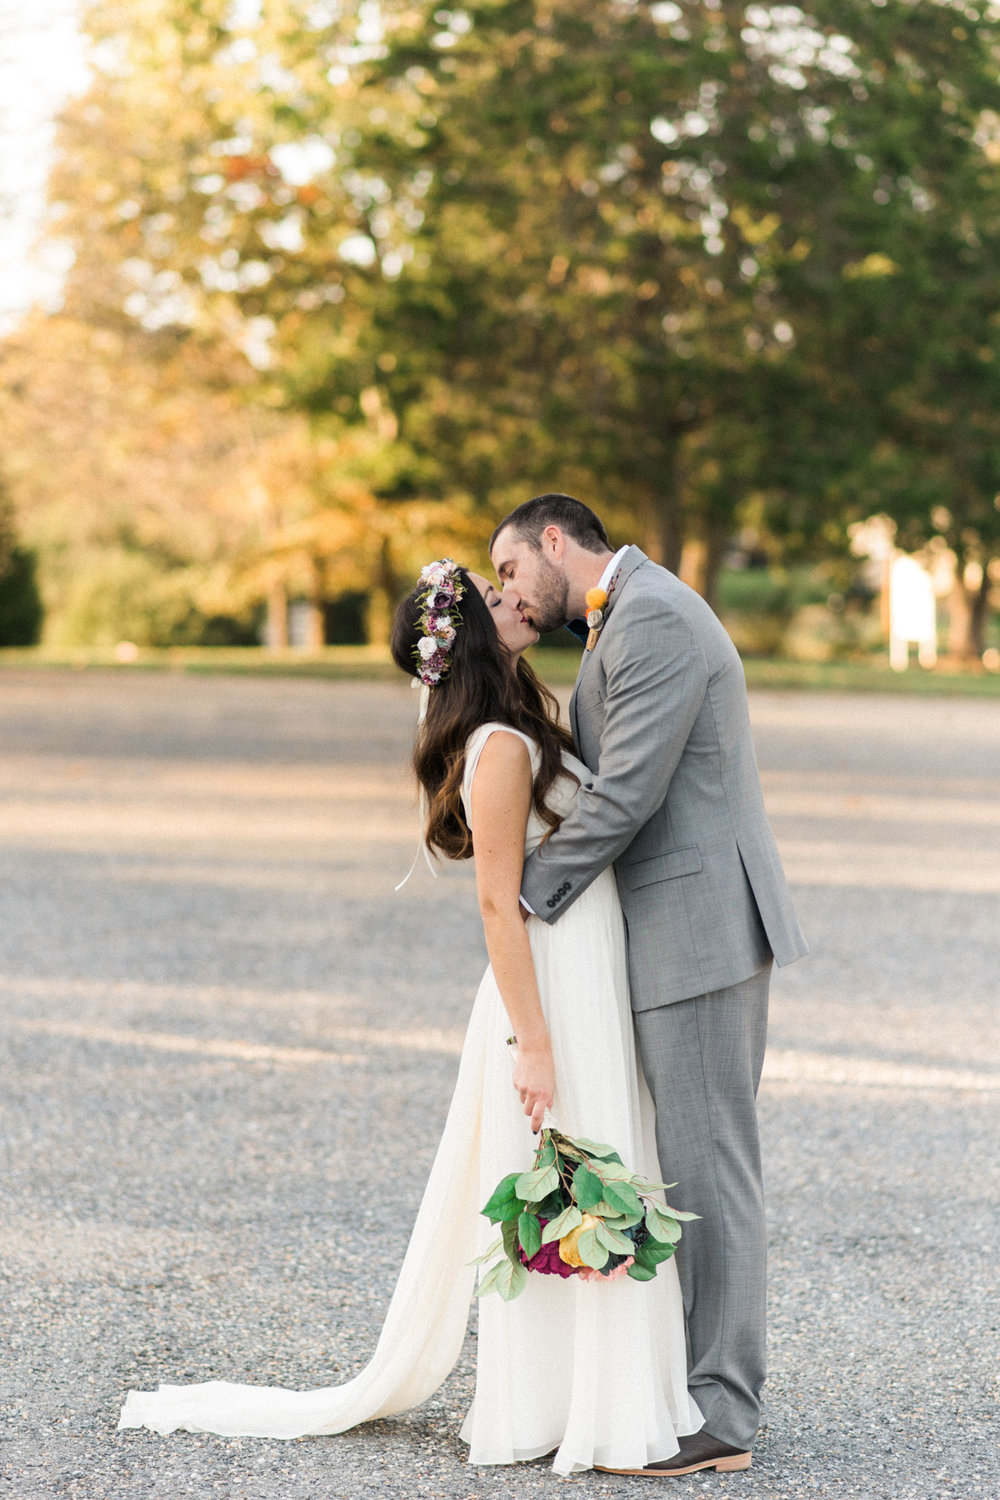 The_Trivium_Estate_Forest_VA_Wedding_Flower_Crown_boho_wedding_classic_wedding_Virginia_Wedding_photographer068.jpg